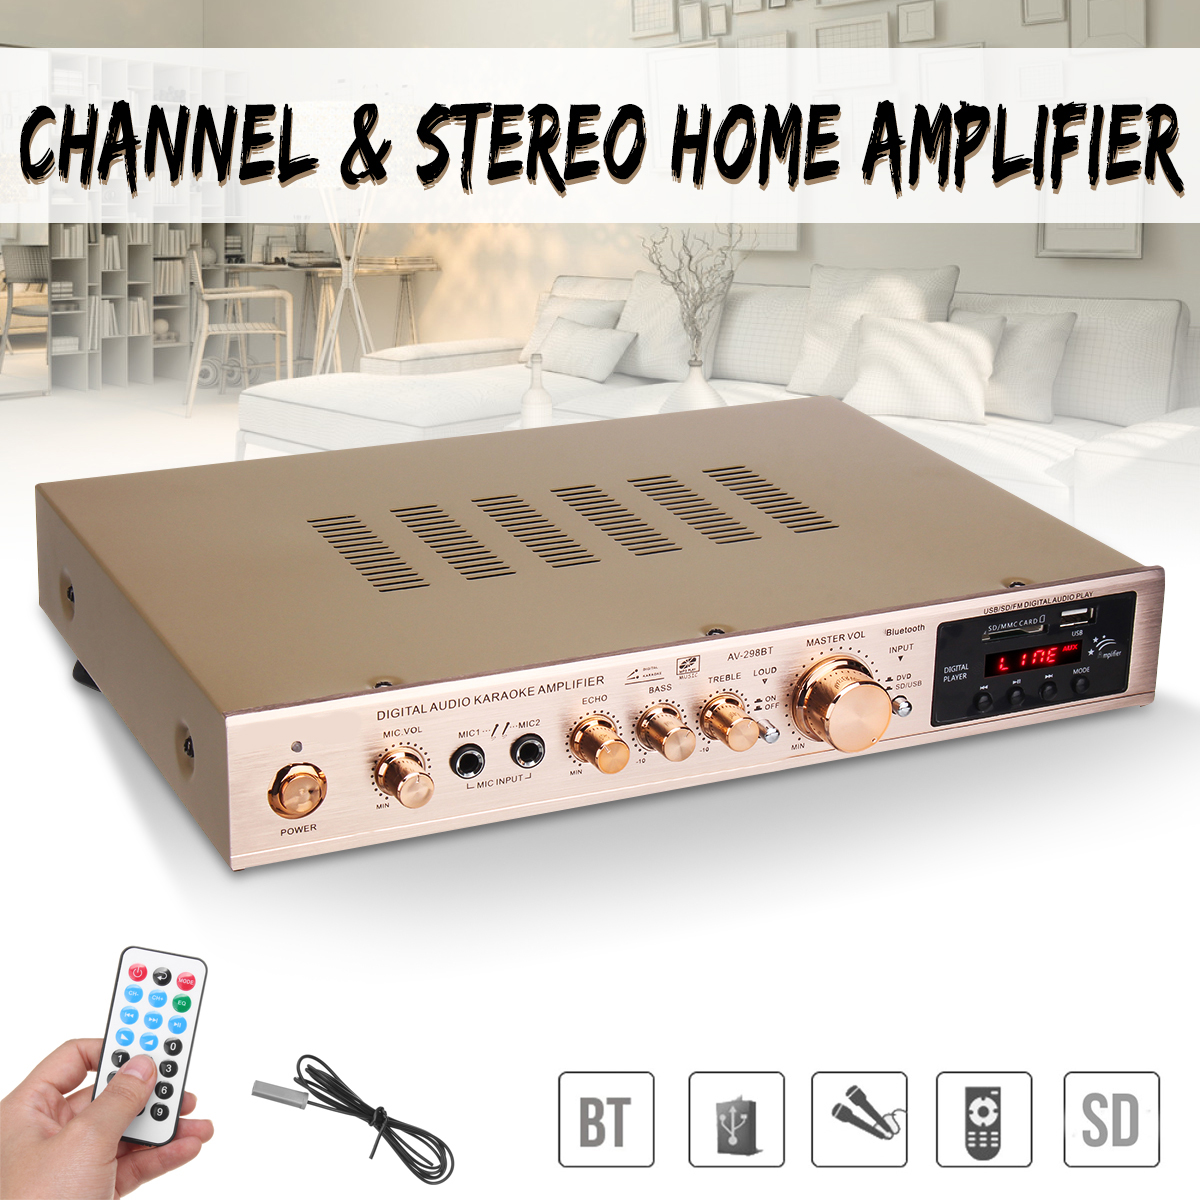 720W 5 Channel Home Amplifier Audio Digital Auto Car AV HiFi Class Power Amplifiers Stereo Sound FM Radio Player Aluminum Alloy 800w universal bluetooth car auto stereo power amplifier car sound wireless amplifier 2 channel eq hifi stereo audio amplifiers